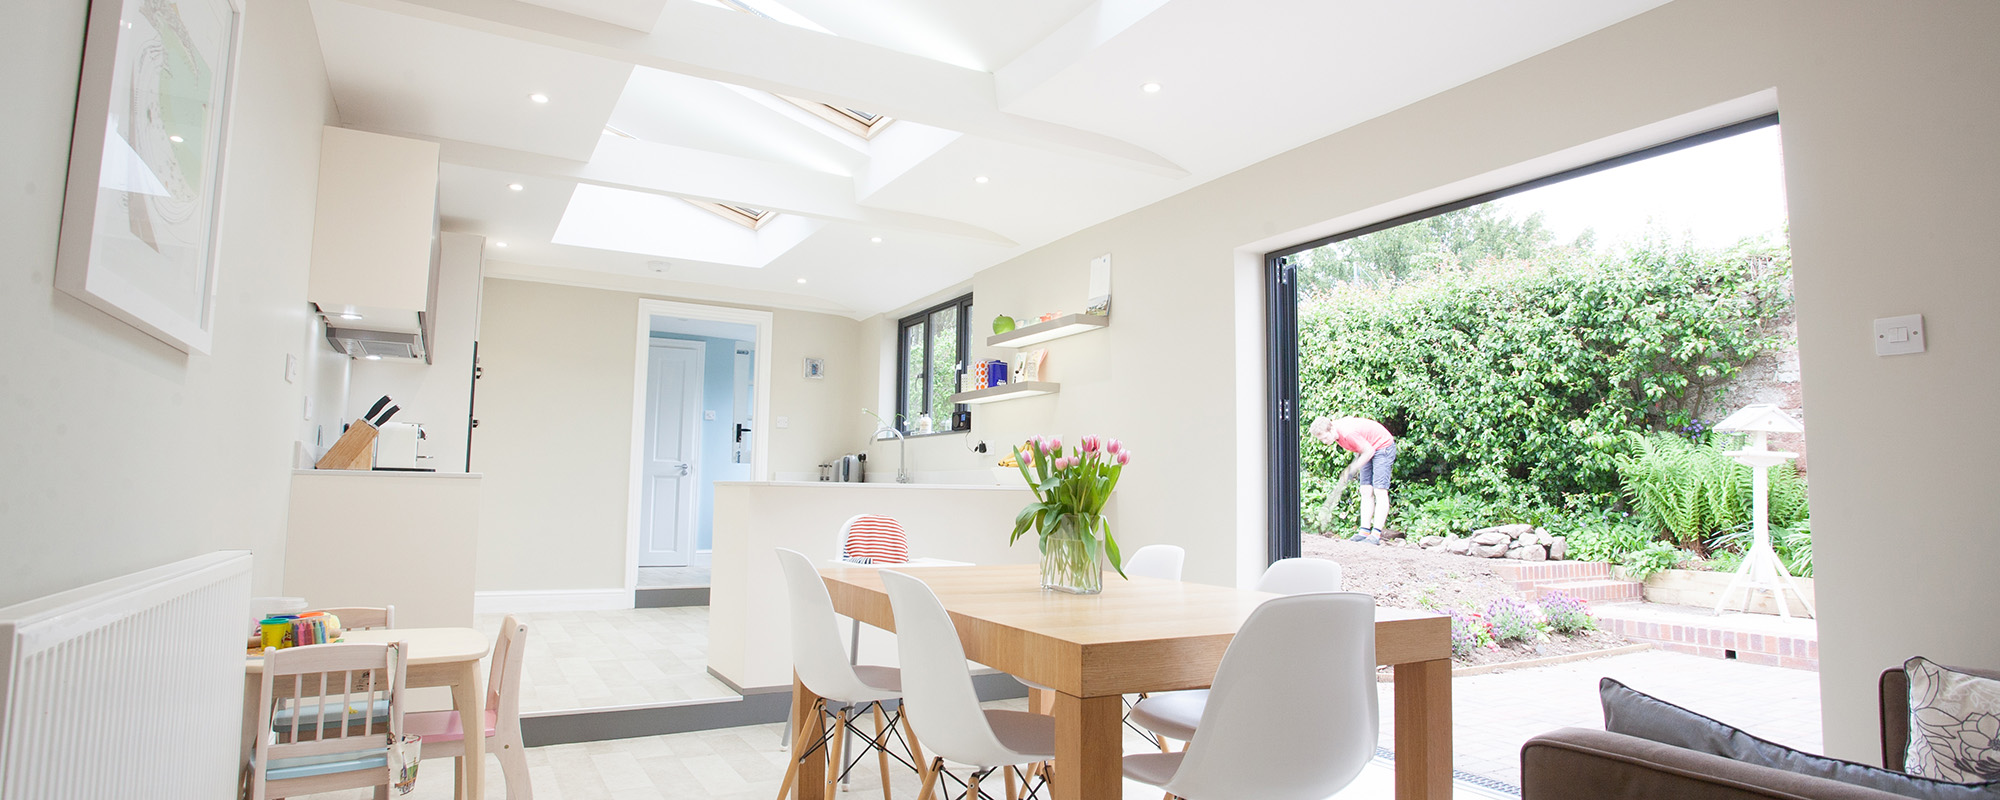 Listed kitchen conversion